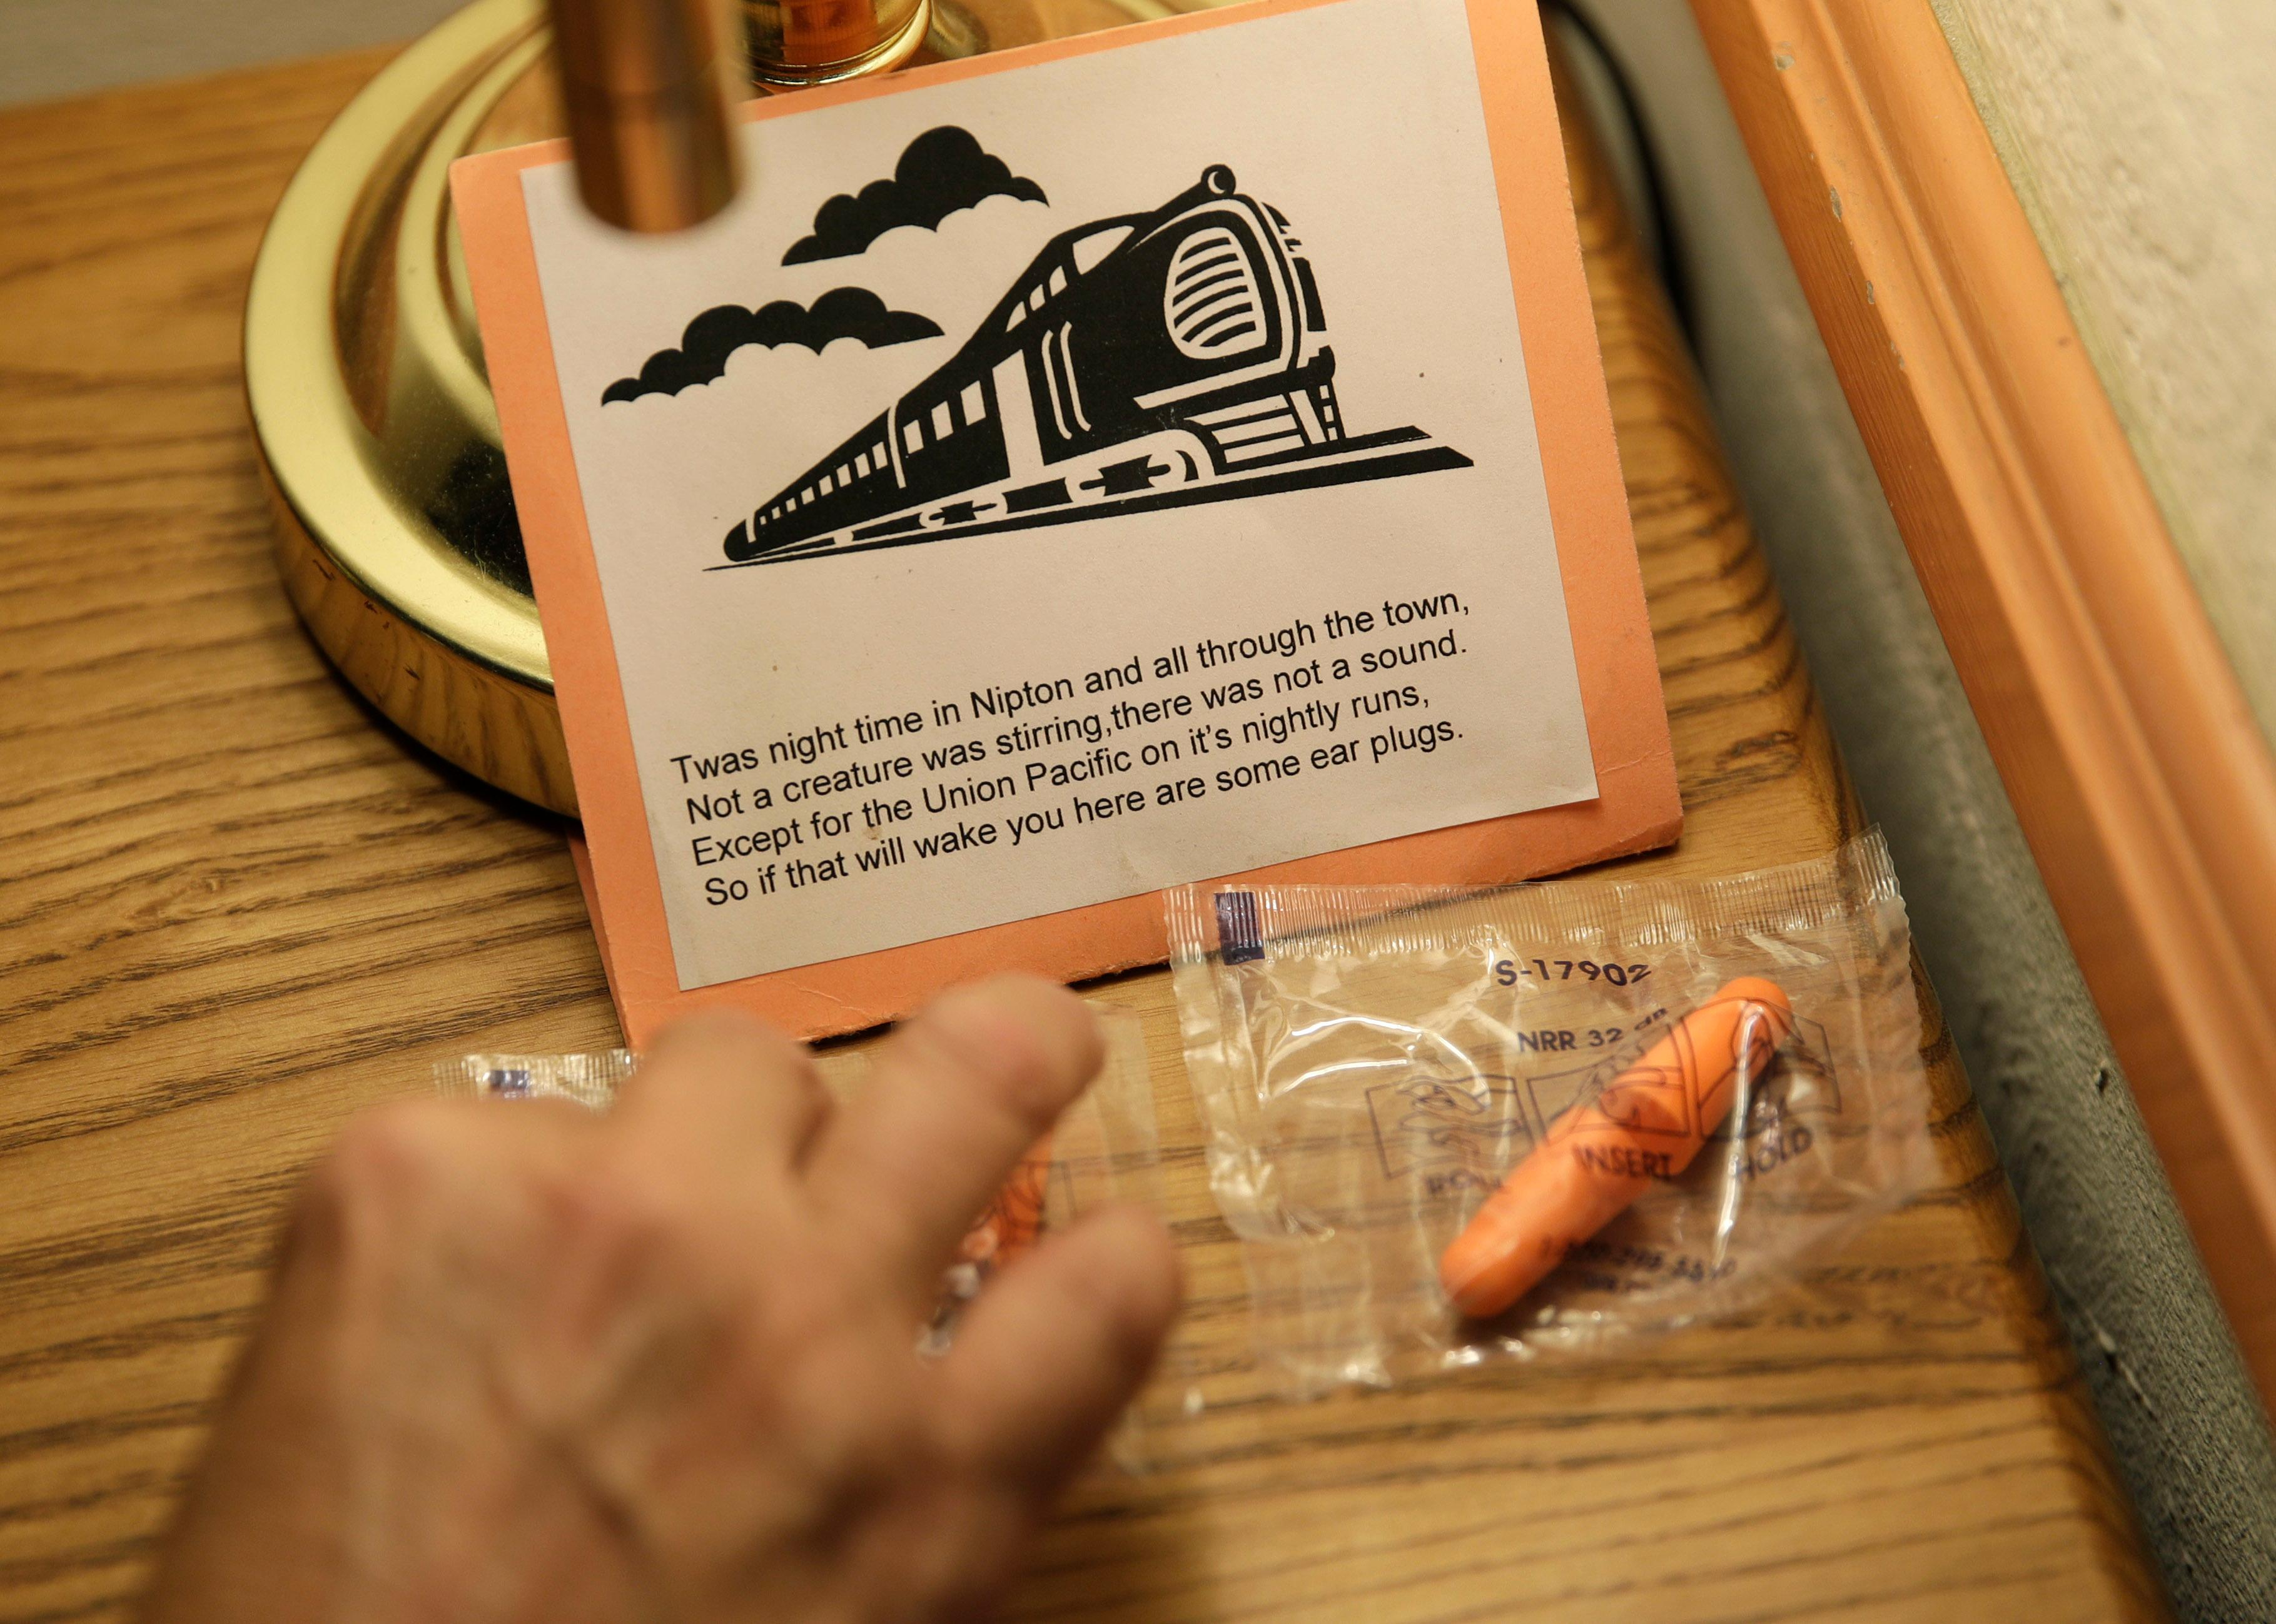 Laura Cavaness places earplugs to block out noise from passing trains in a room at the Hotel Nipton, Thursday, Aug. 3, 2017, in Nipton, Calif. American Green Inc., one of the nation's largest cannabis companies, announced it has bought the entire 80 acre California desert town of Nipton. (AP Photo/John Locher)